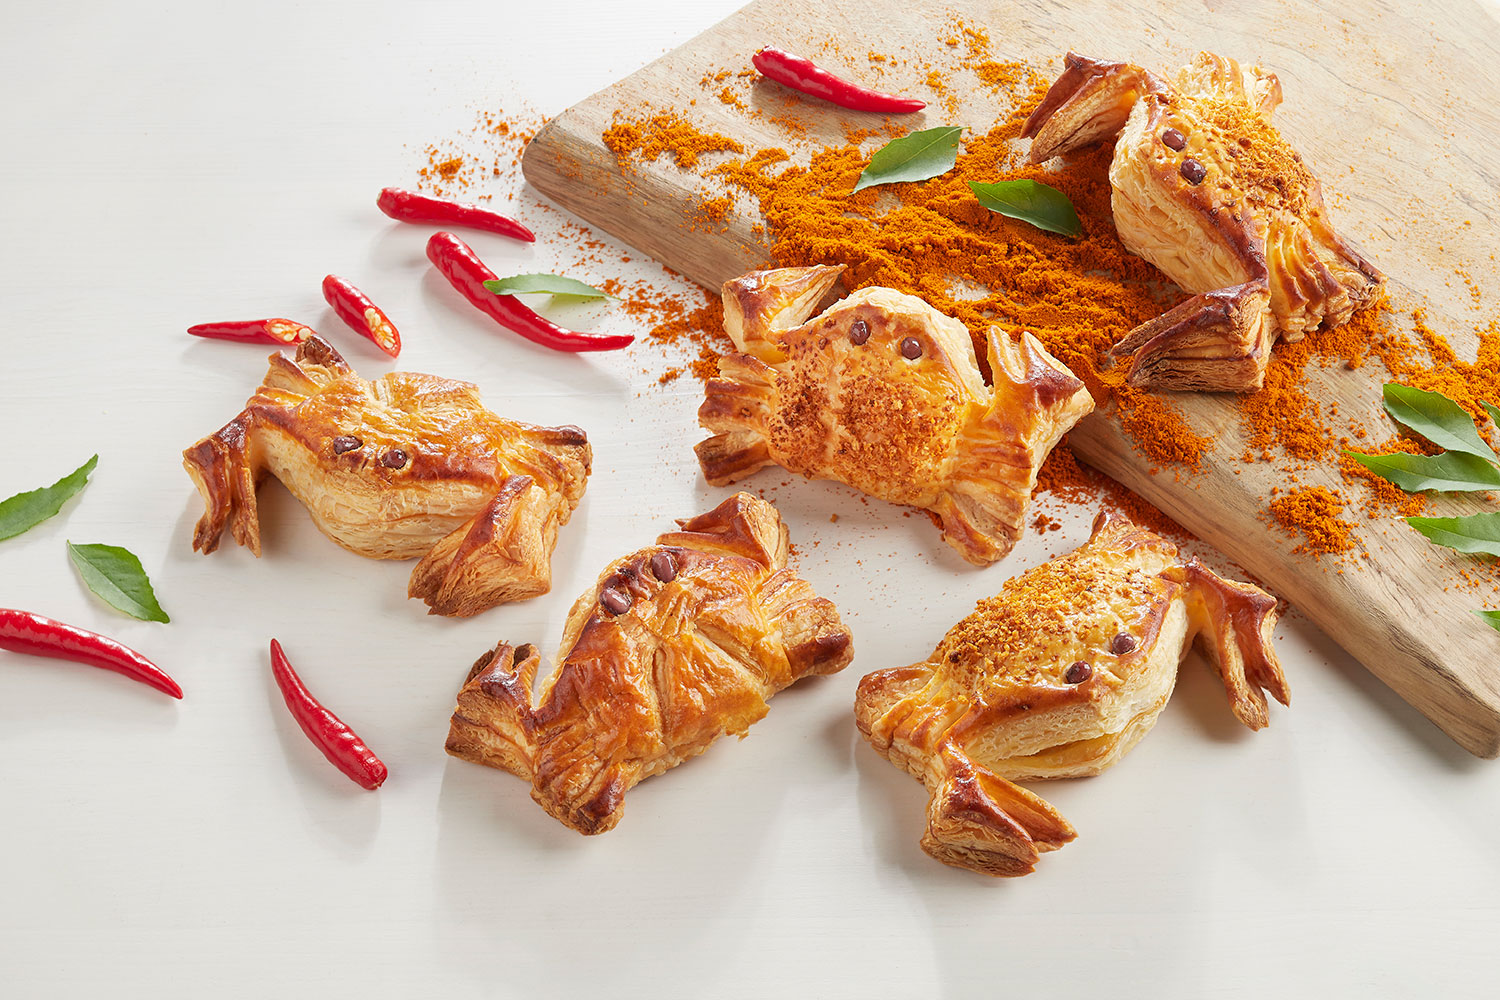 Curry-_-Chilli-Crab-Puffs-(credit-image-to-BreadTalk)